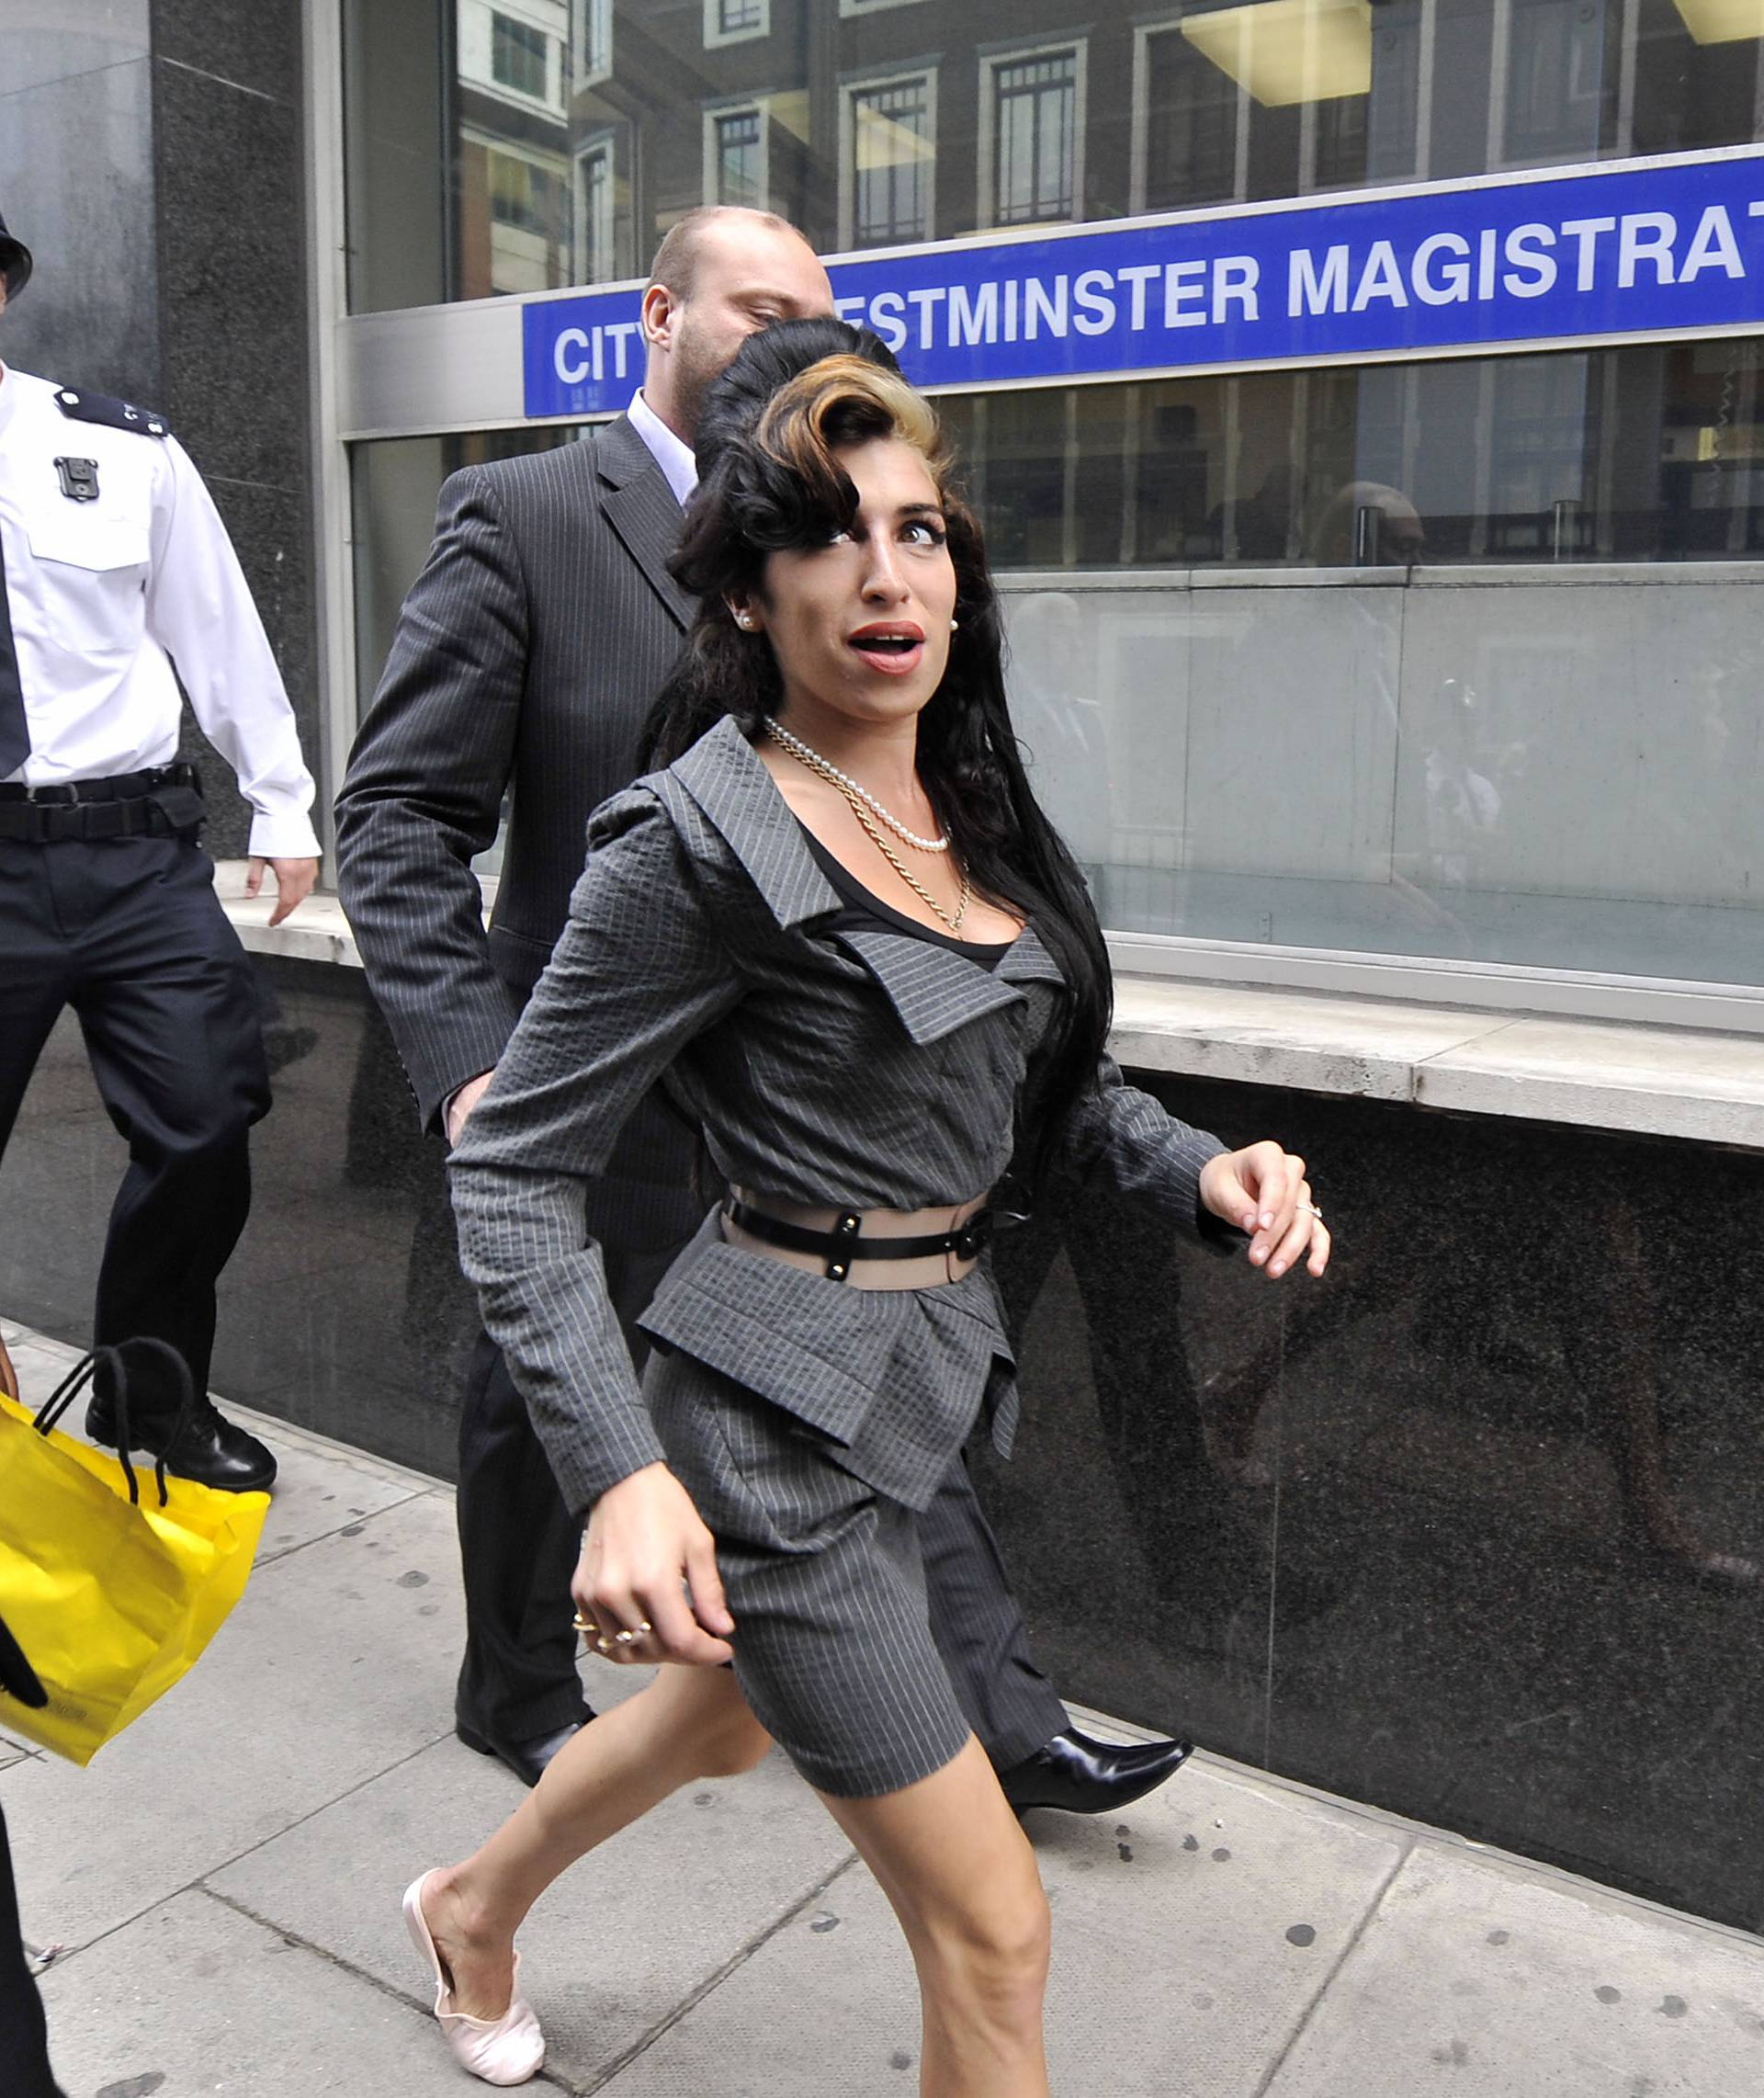 Amy Winehouse arrives at court - London